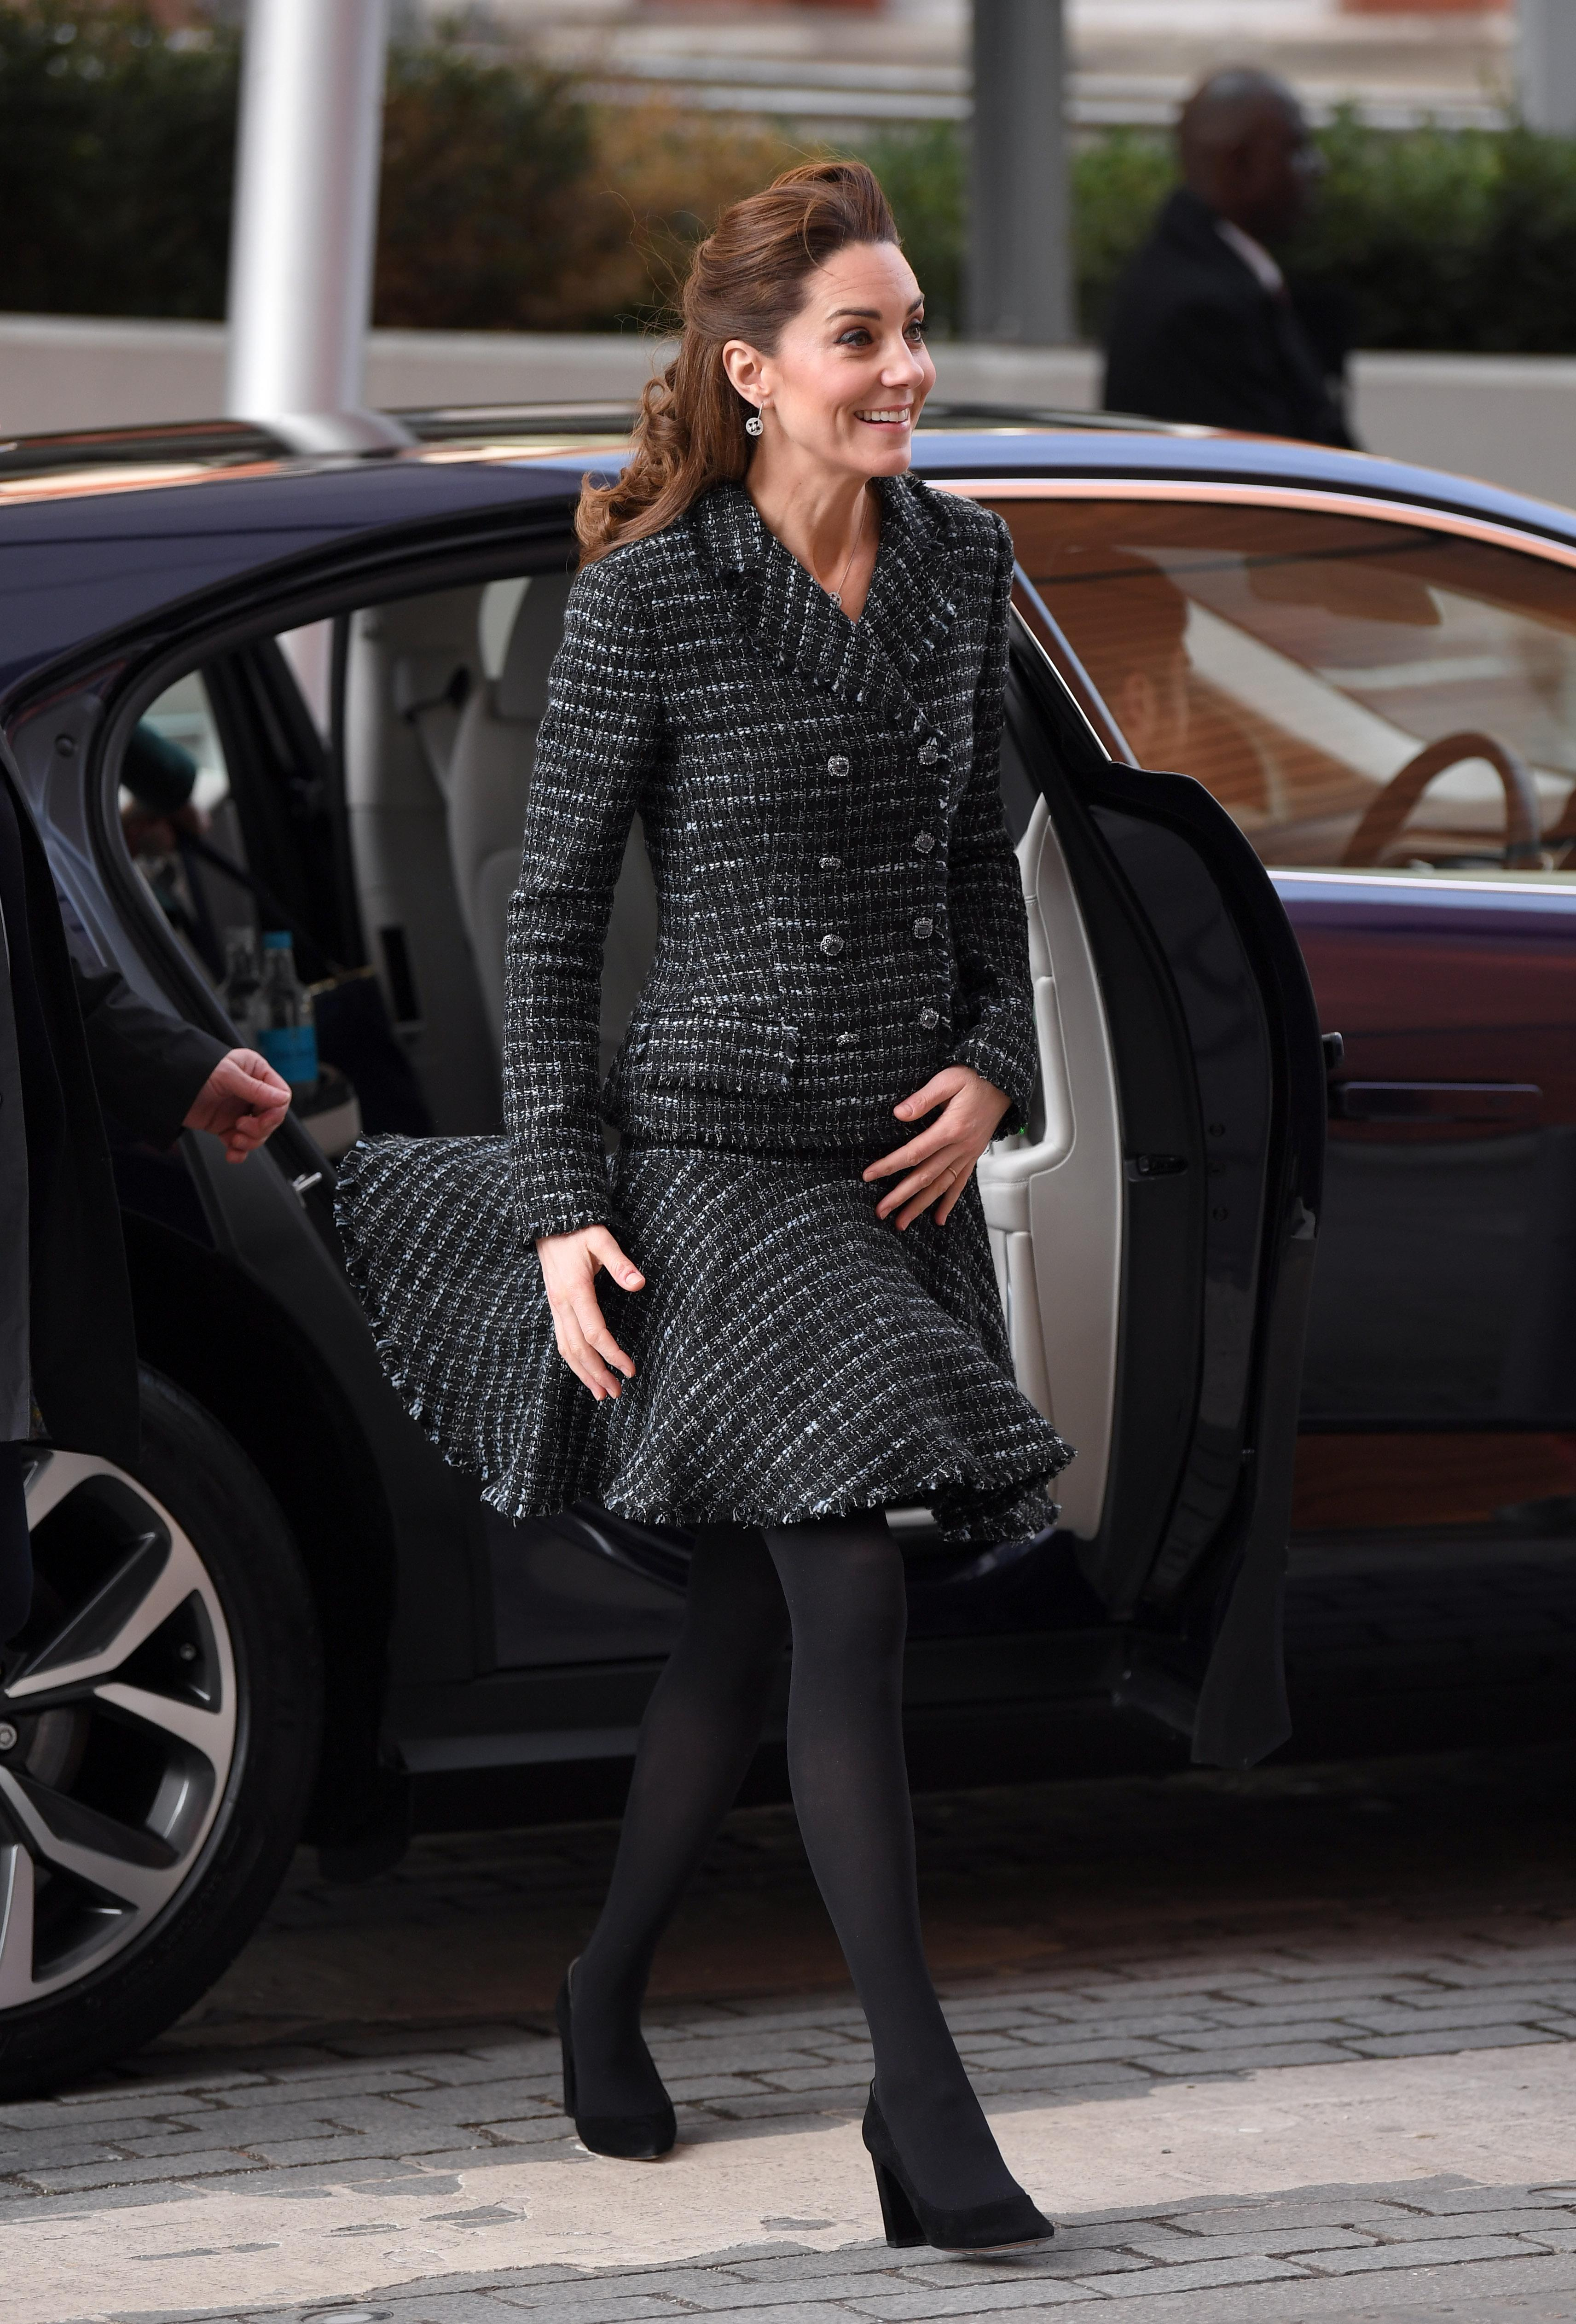 LONDON, ENGLAND - JANUARY 28: Catherine, Duchess of Cambridge joins a workshop run by the National Portrait Gallery's Hospital Programme at Evelina Children's Hospital on January 28, 2020 in London, England. HRH is Patron of Evelina London Children's Hospital and Patron of the National Portrait Gallery. (Photo by Karwai Tang/WireImage)